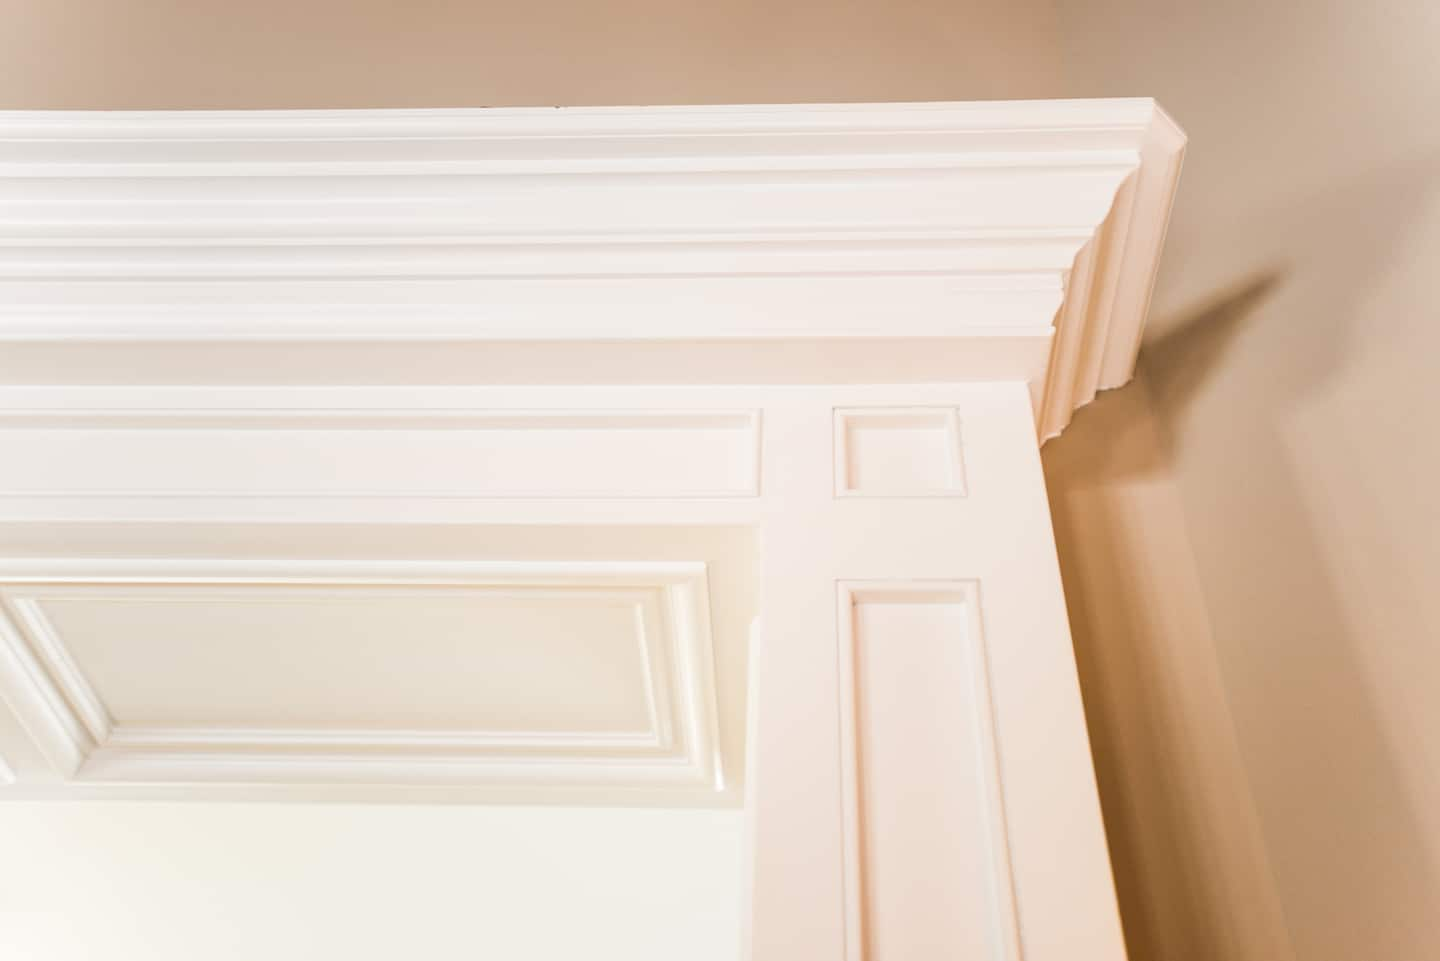 Related Keywords u0026 Suggestions for trim molding